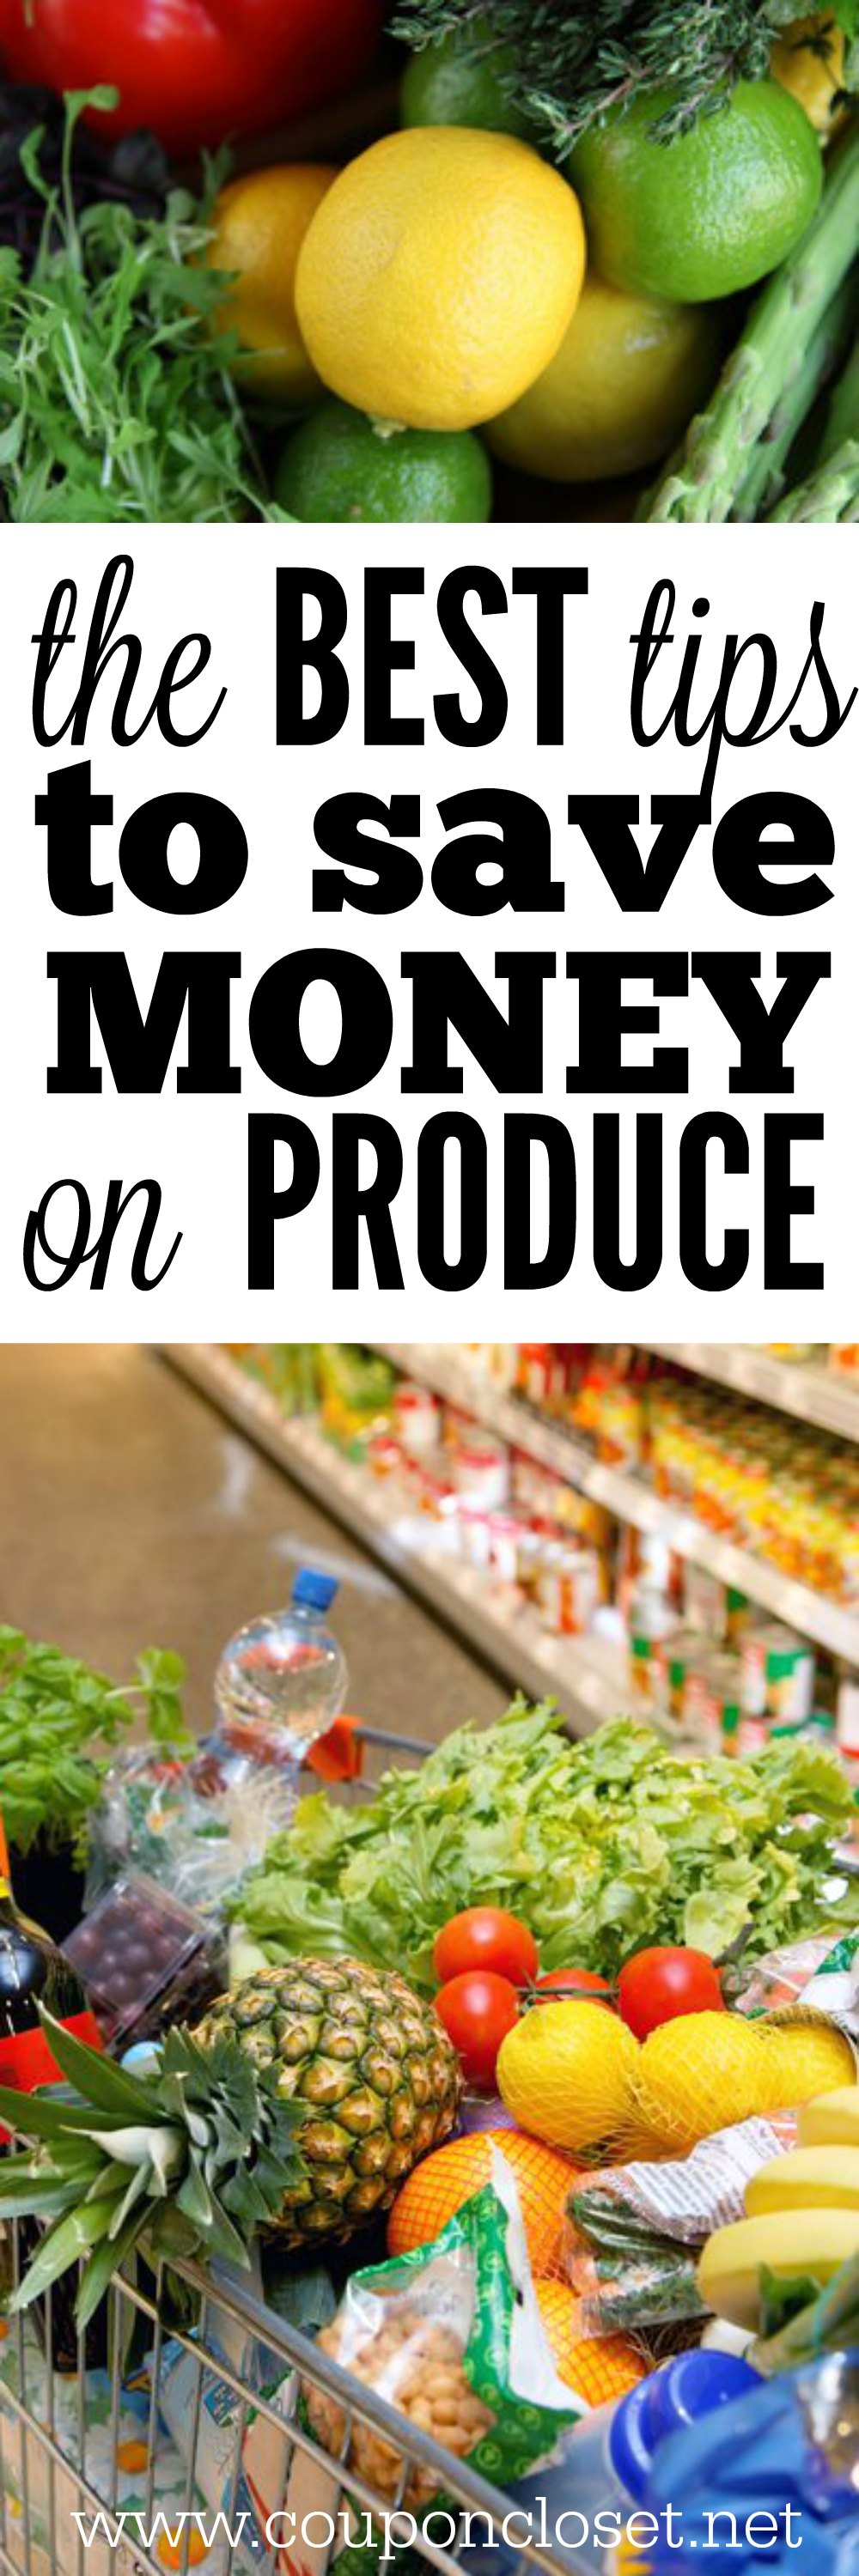 best tips to save money on produce